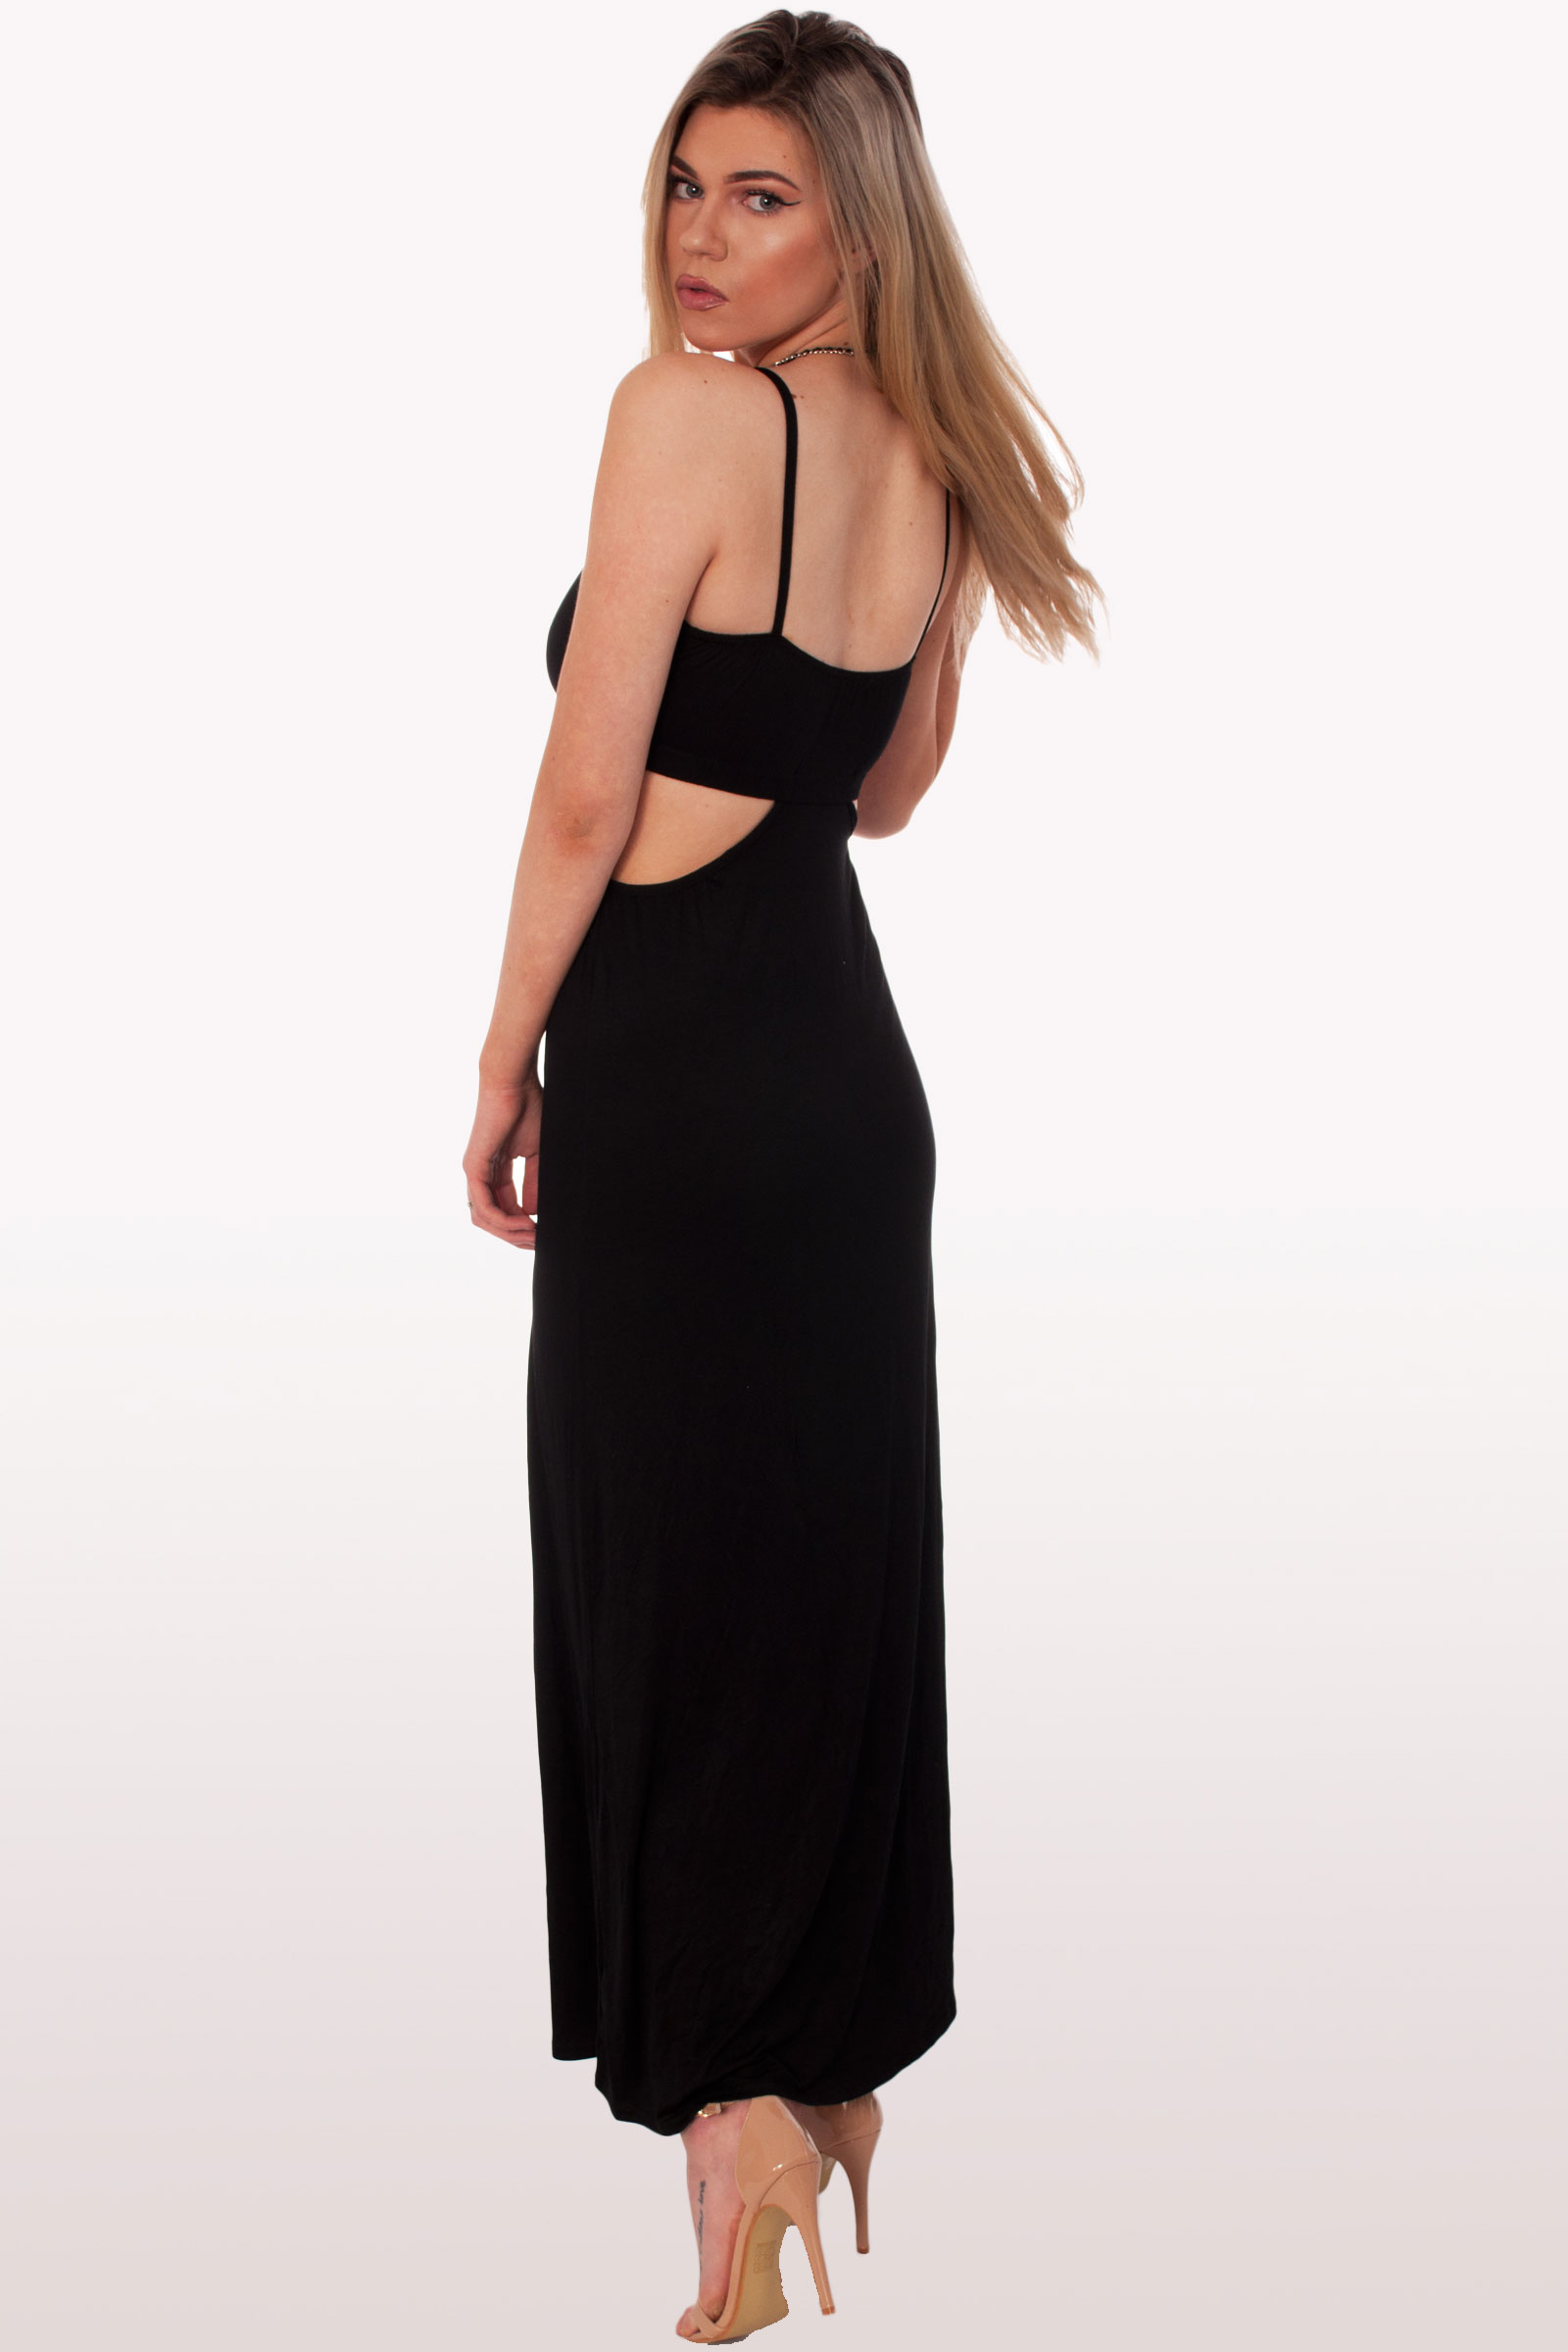 Black Cut Out Maxi Dress Clothing Dresses Modamore